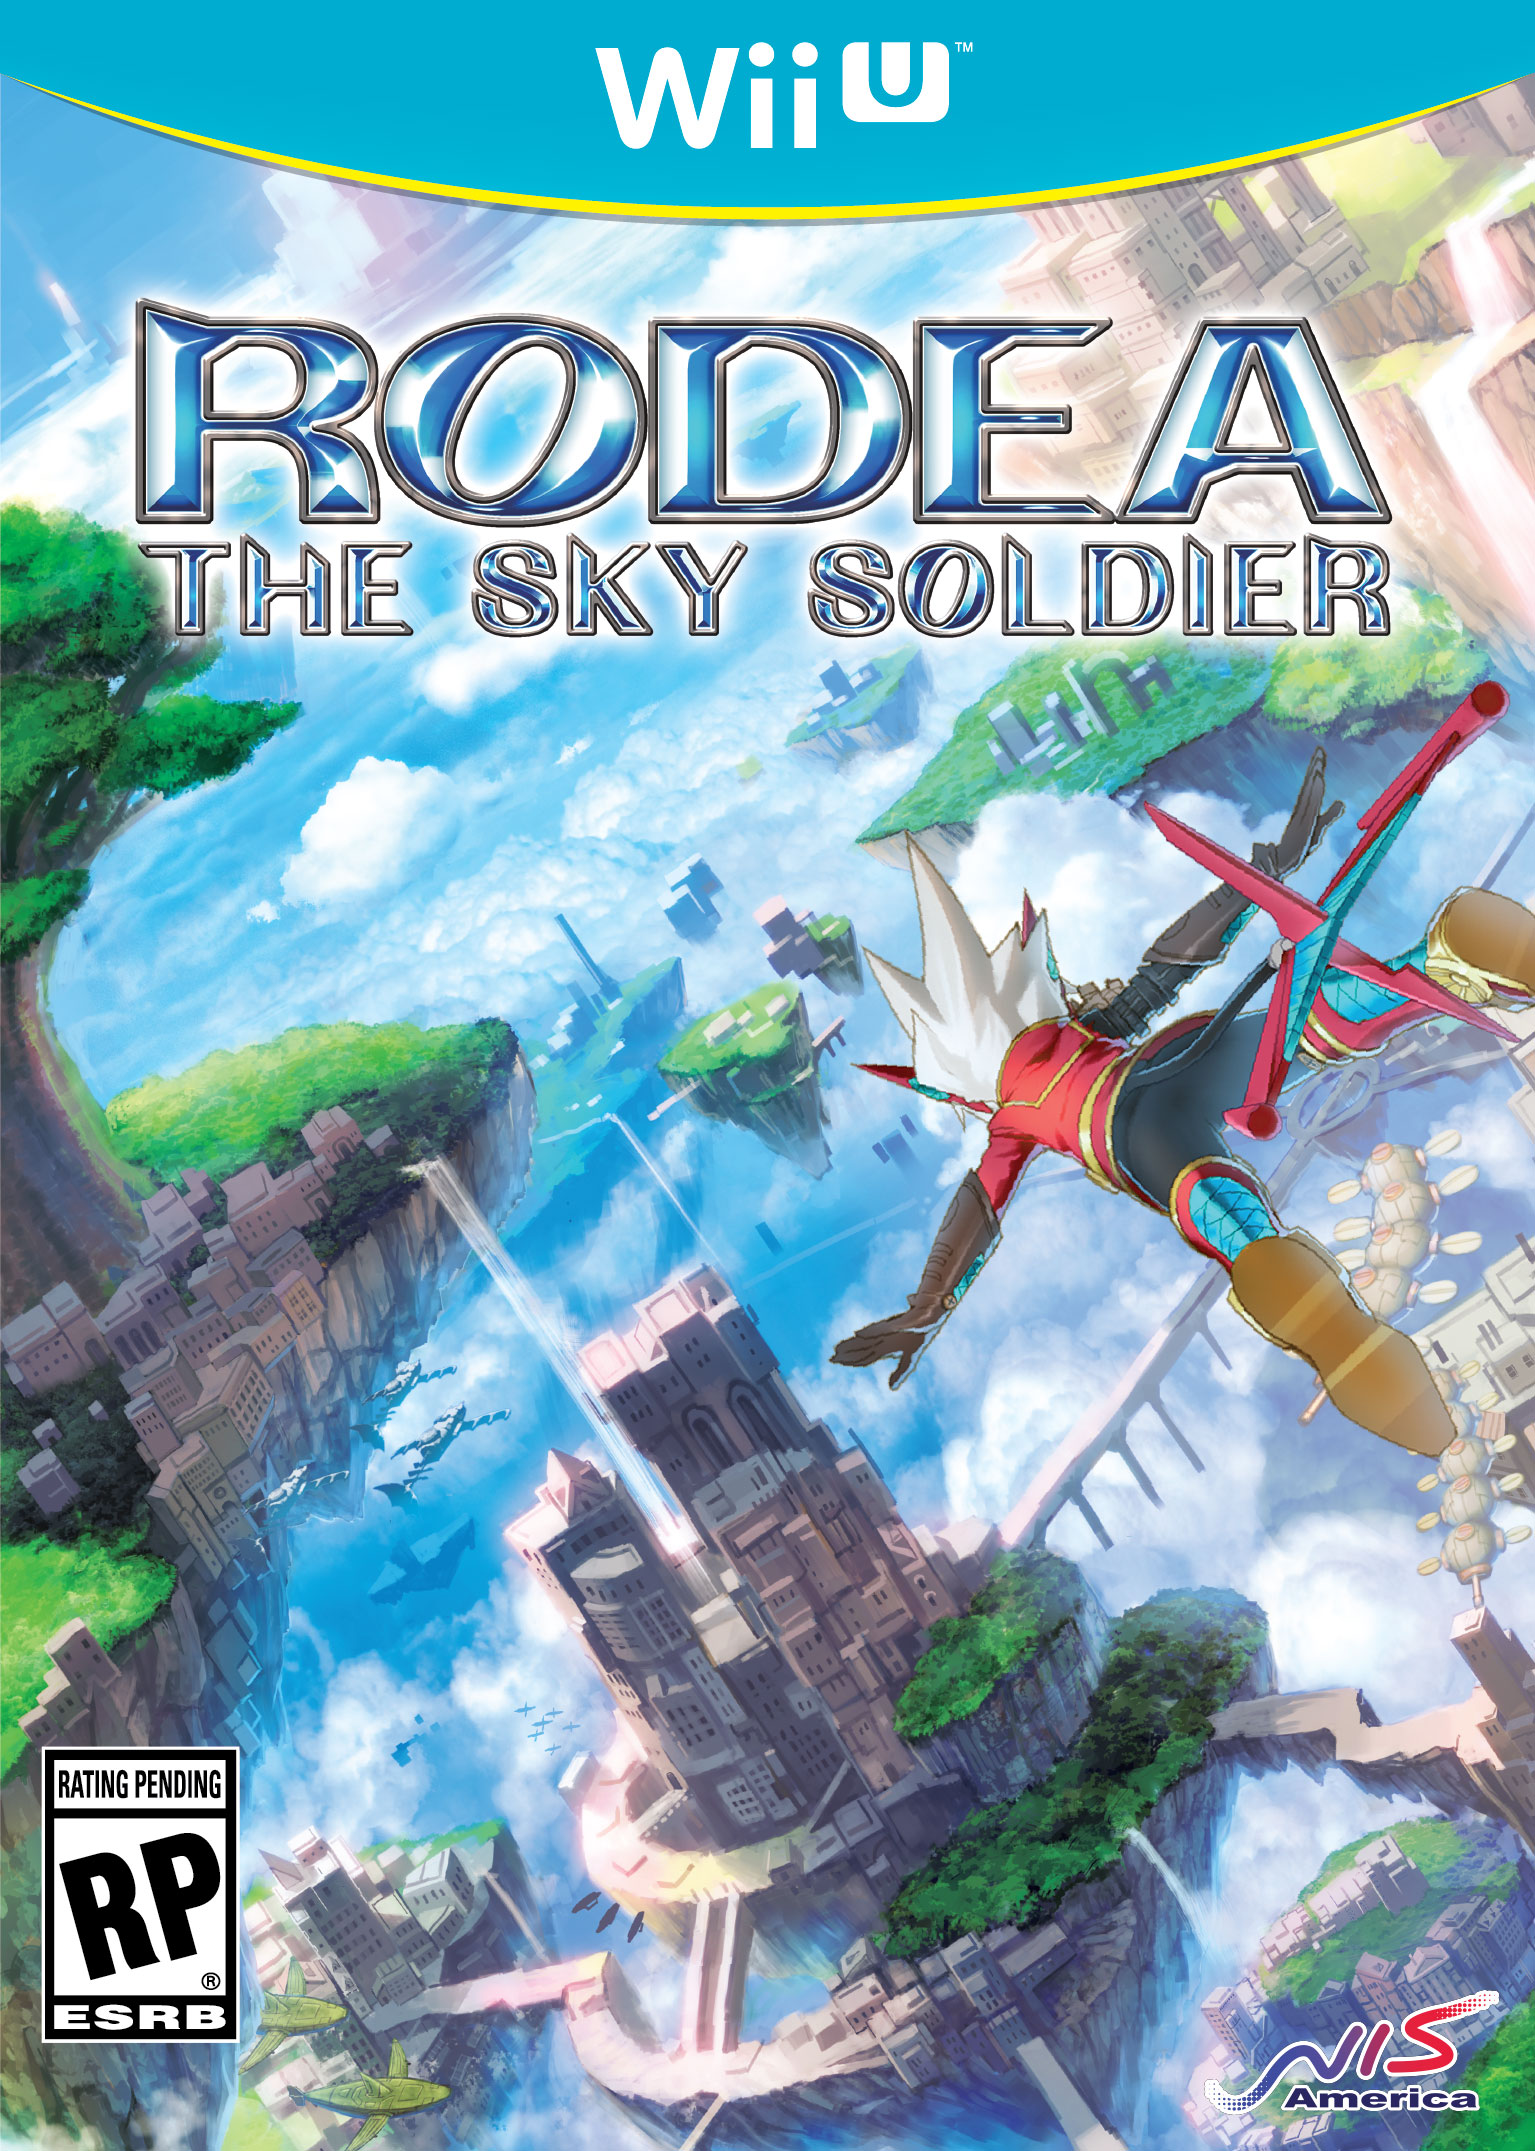 Wii U Rodea The Sky Soldier Box Artwork USA 2015